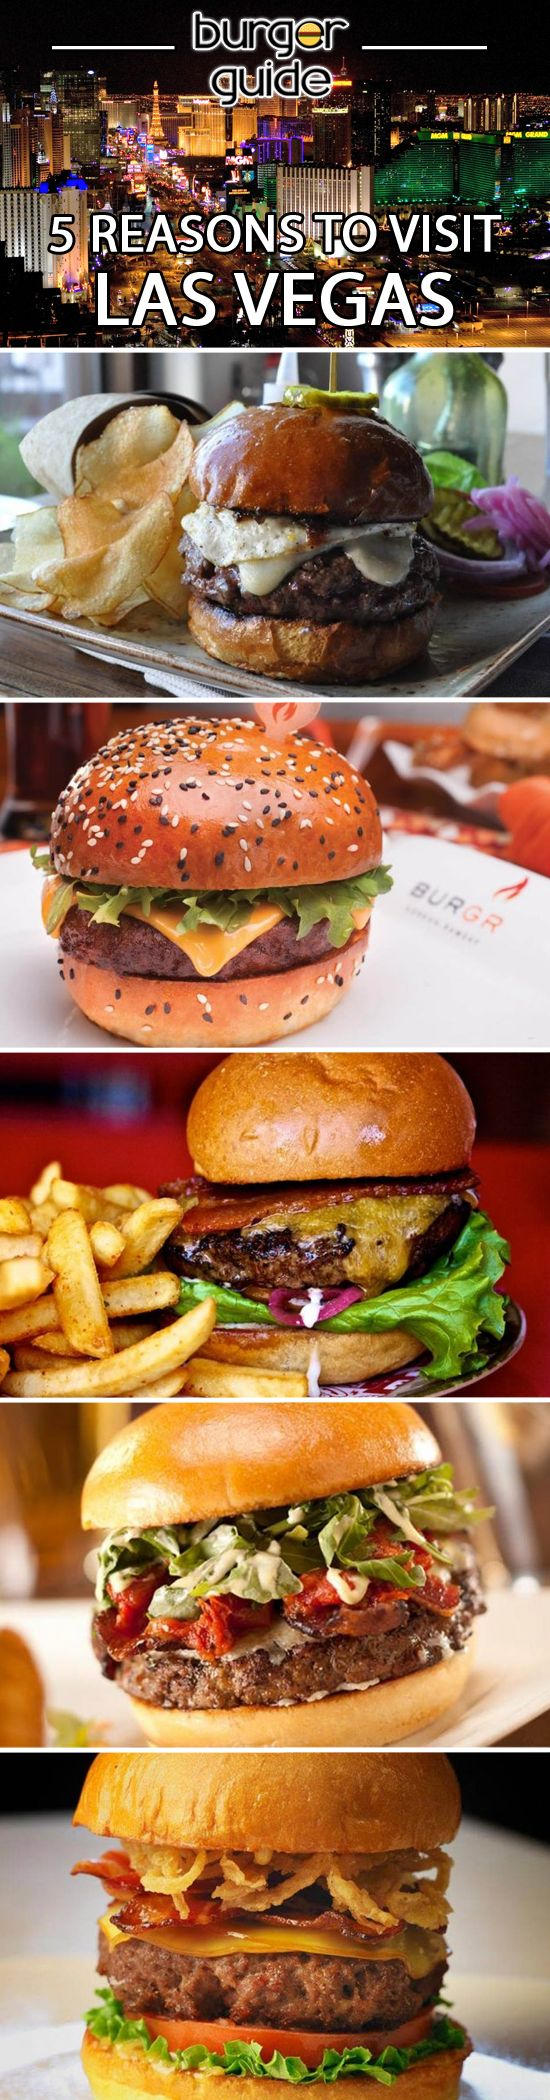 Las Vegas Burgers Worth Planning a Trip Around. Travel + Food = Love. More Vacation Worthy Content at http://theburgerguide.com/best-burgers-in-metros.php?metro=Las%20Vegas